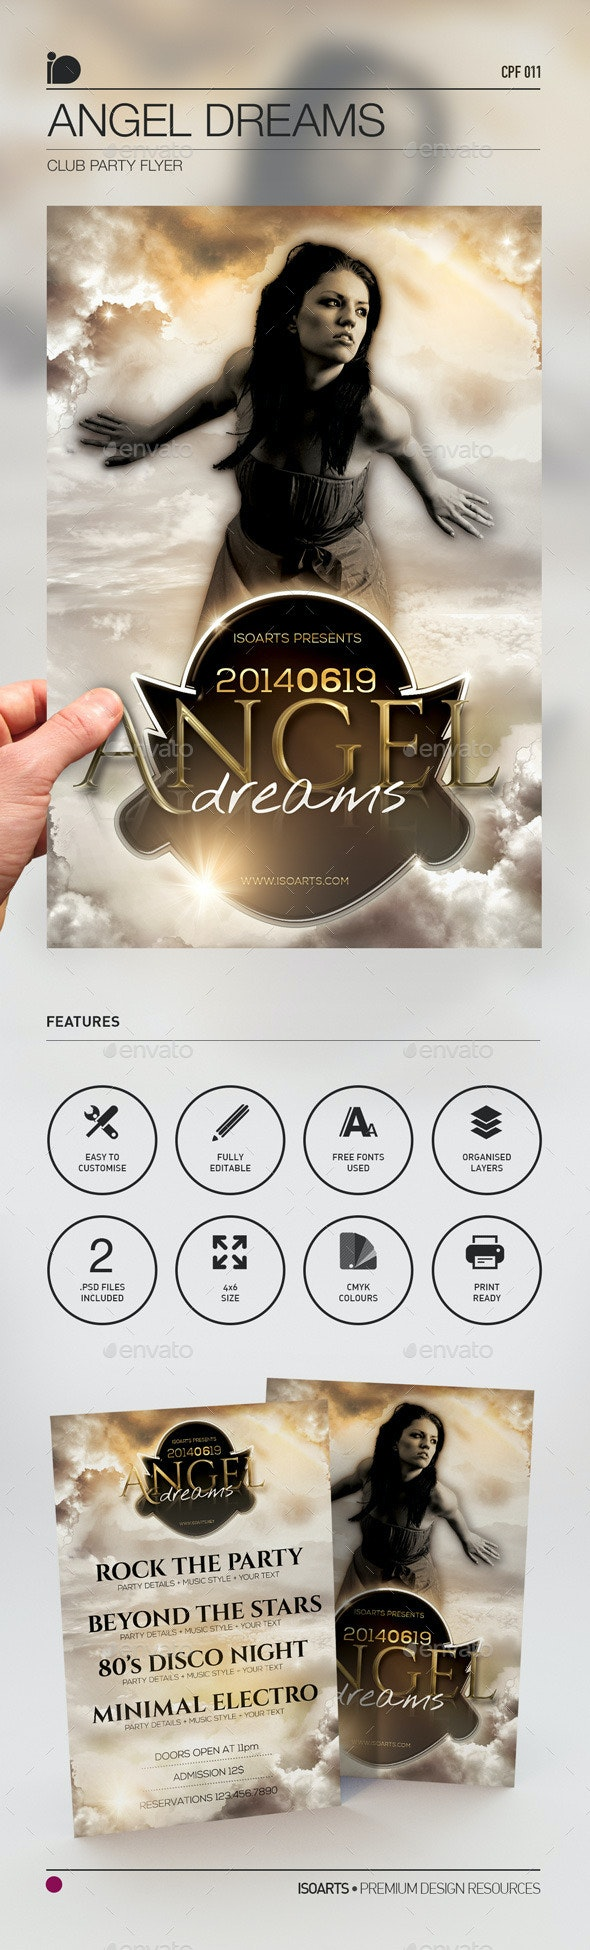 Club Party Flyer • Angel Dreams - Clubs & Parties Events